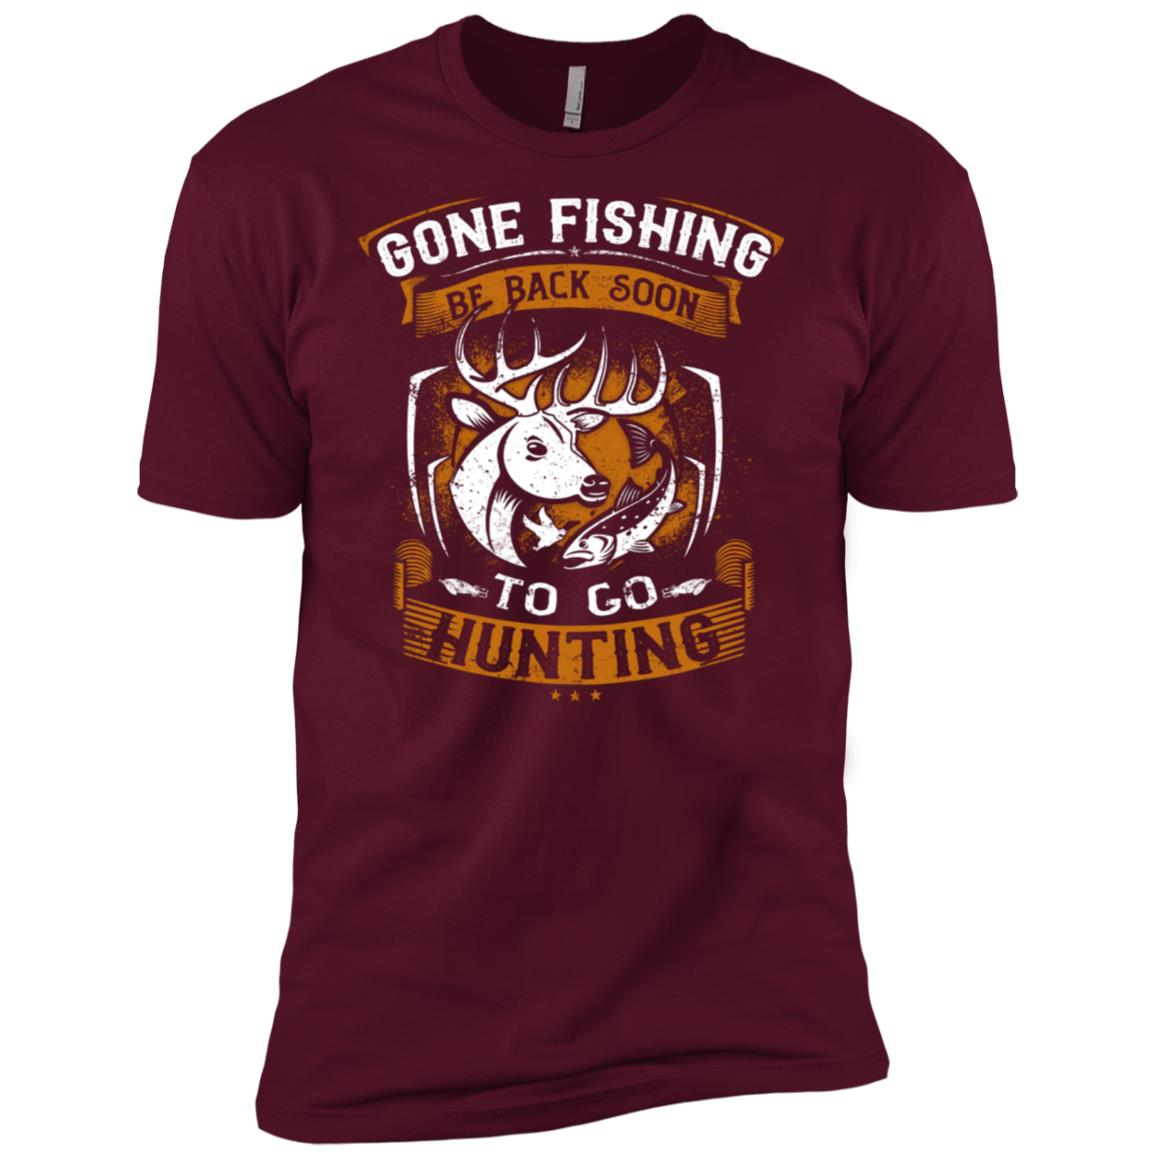 Funny Fishing Hunting Gift for Hunters-1 Men Short Sleeve T-Shirt